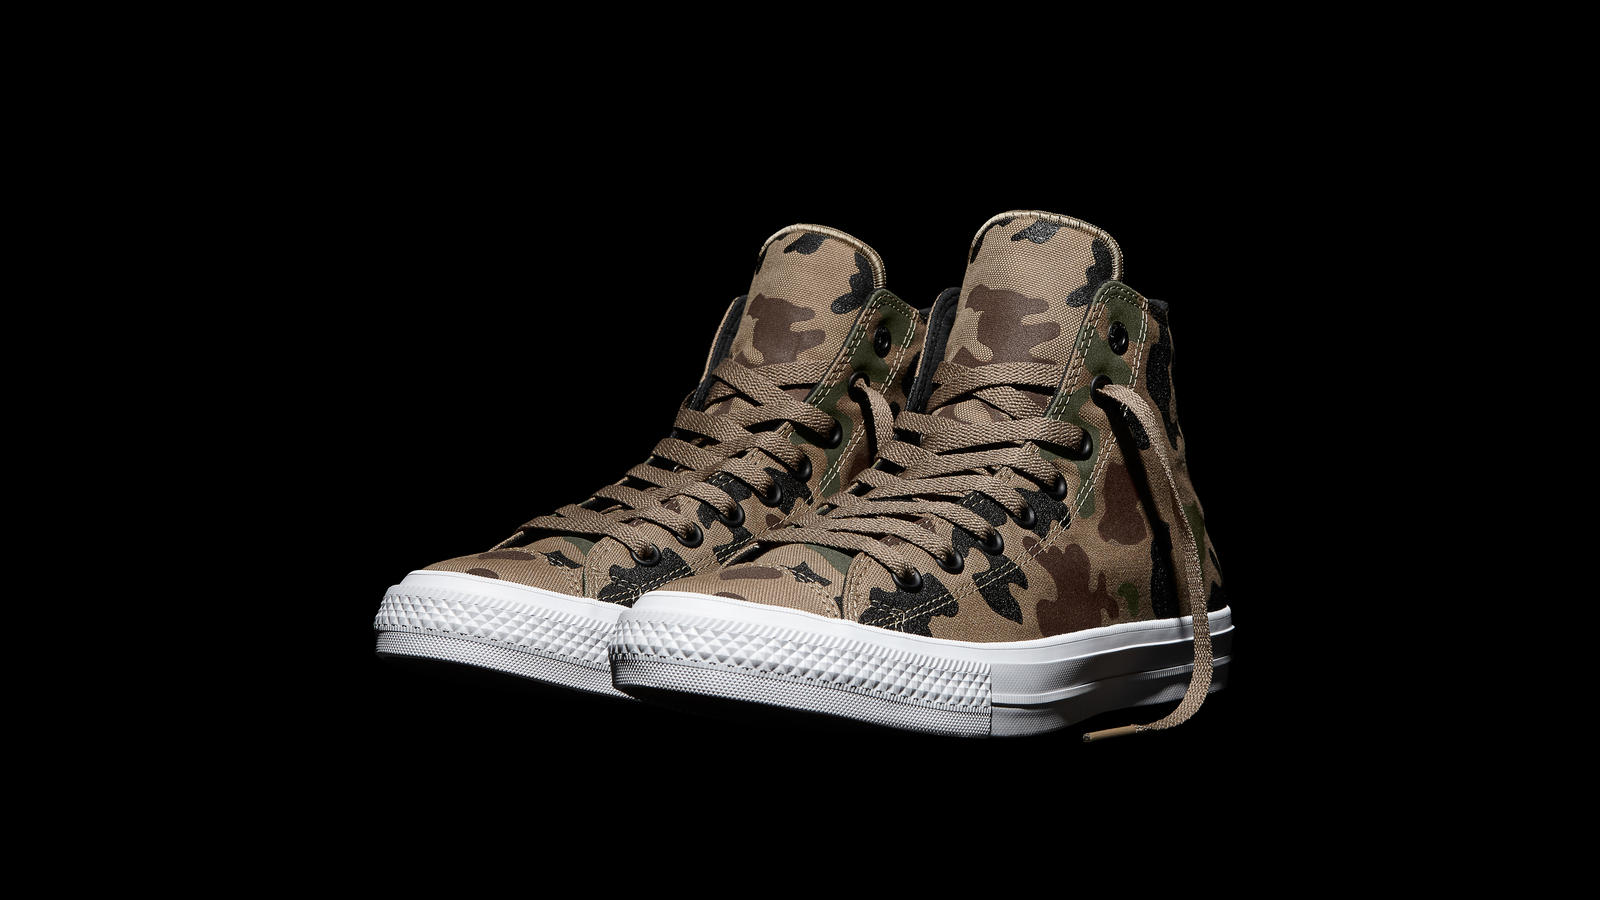 e70decbce76 Converse Chuck Taylor All Star Ii Reflective Camo Brown Pair Original